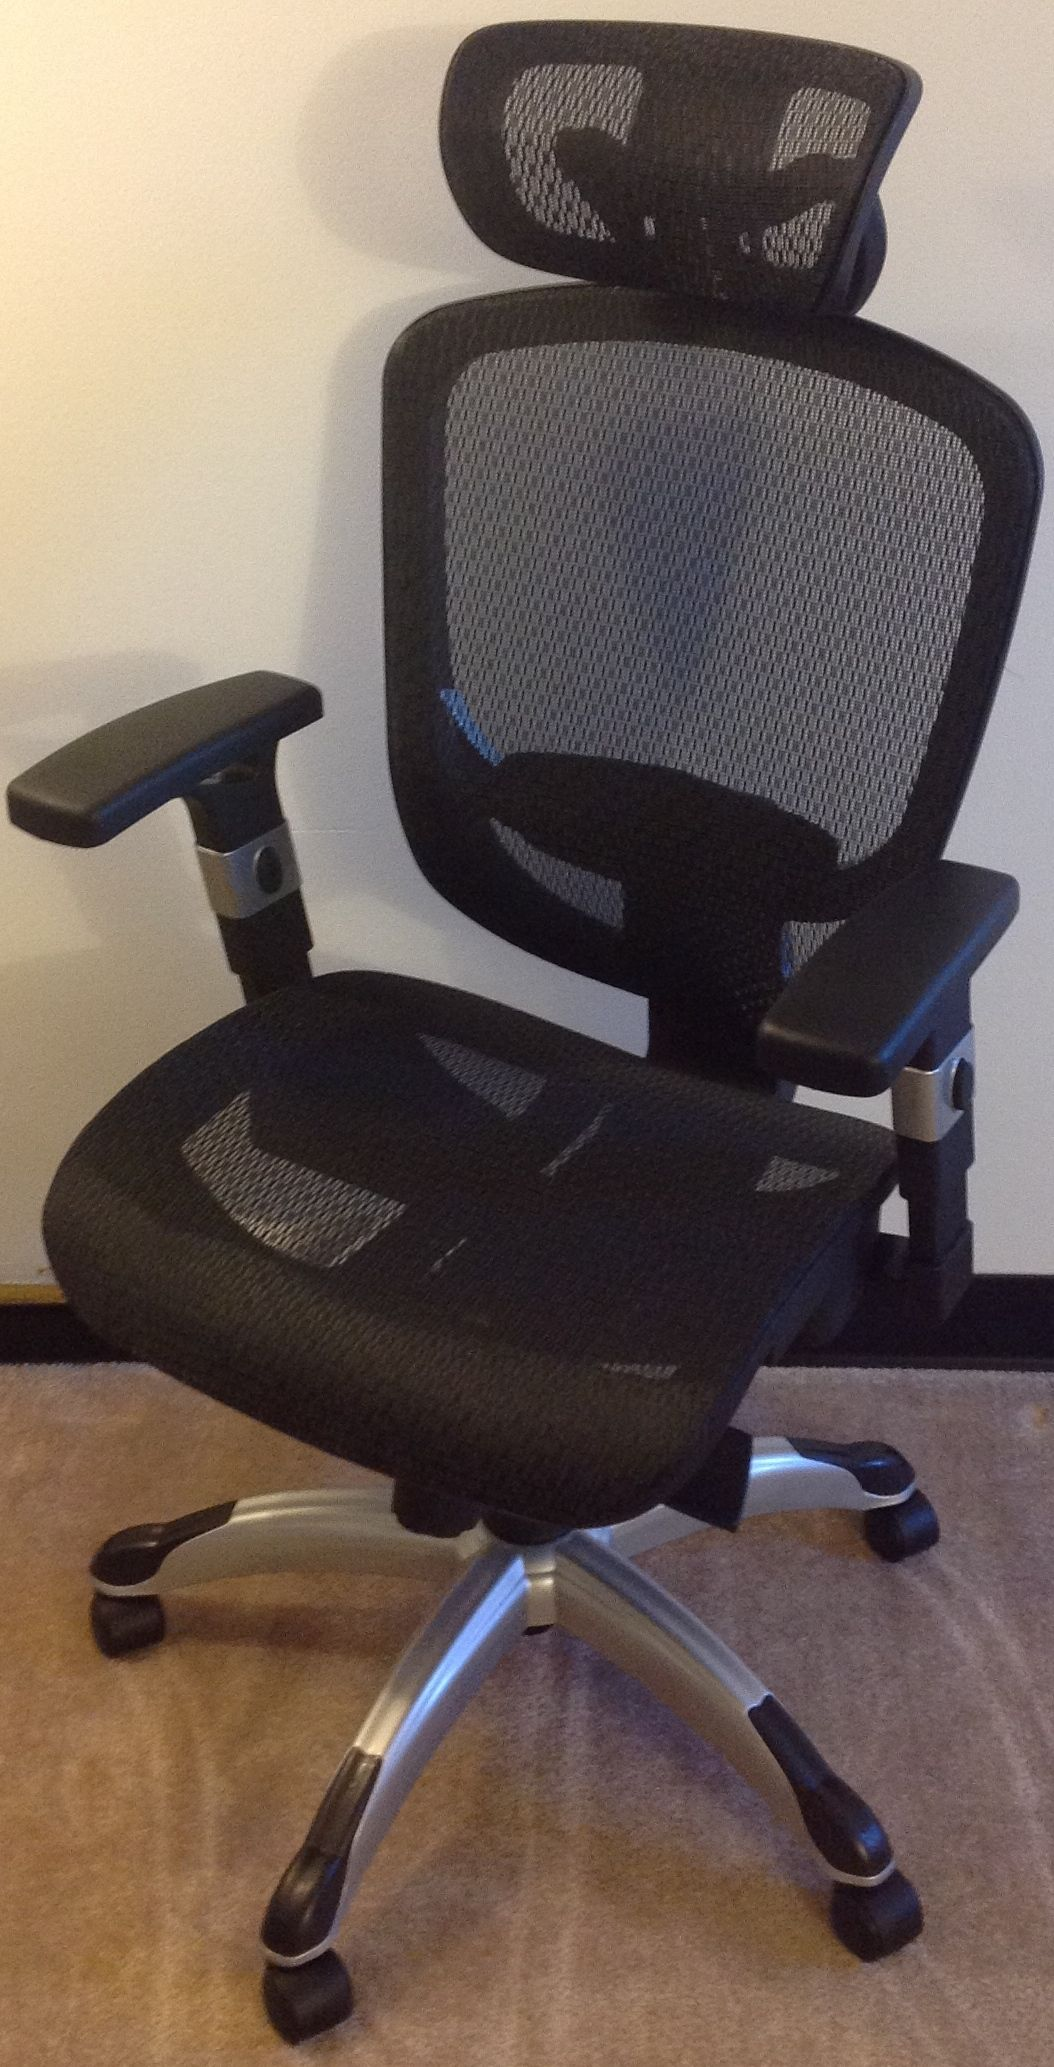 staples task chair canada reupholster leather to fabric hyken technical reviewer discretion assembled